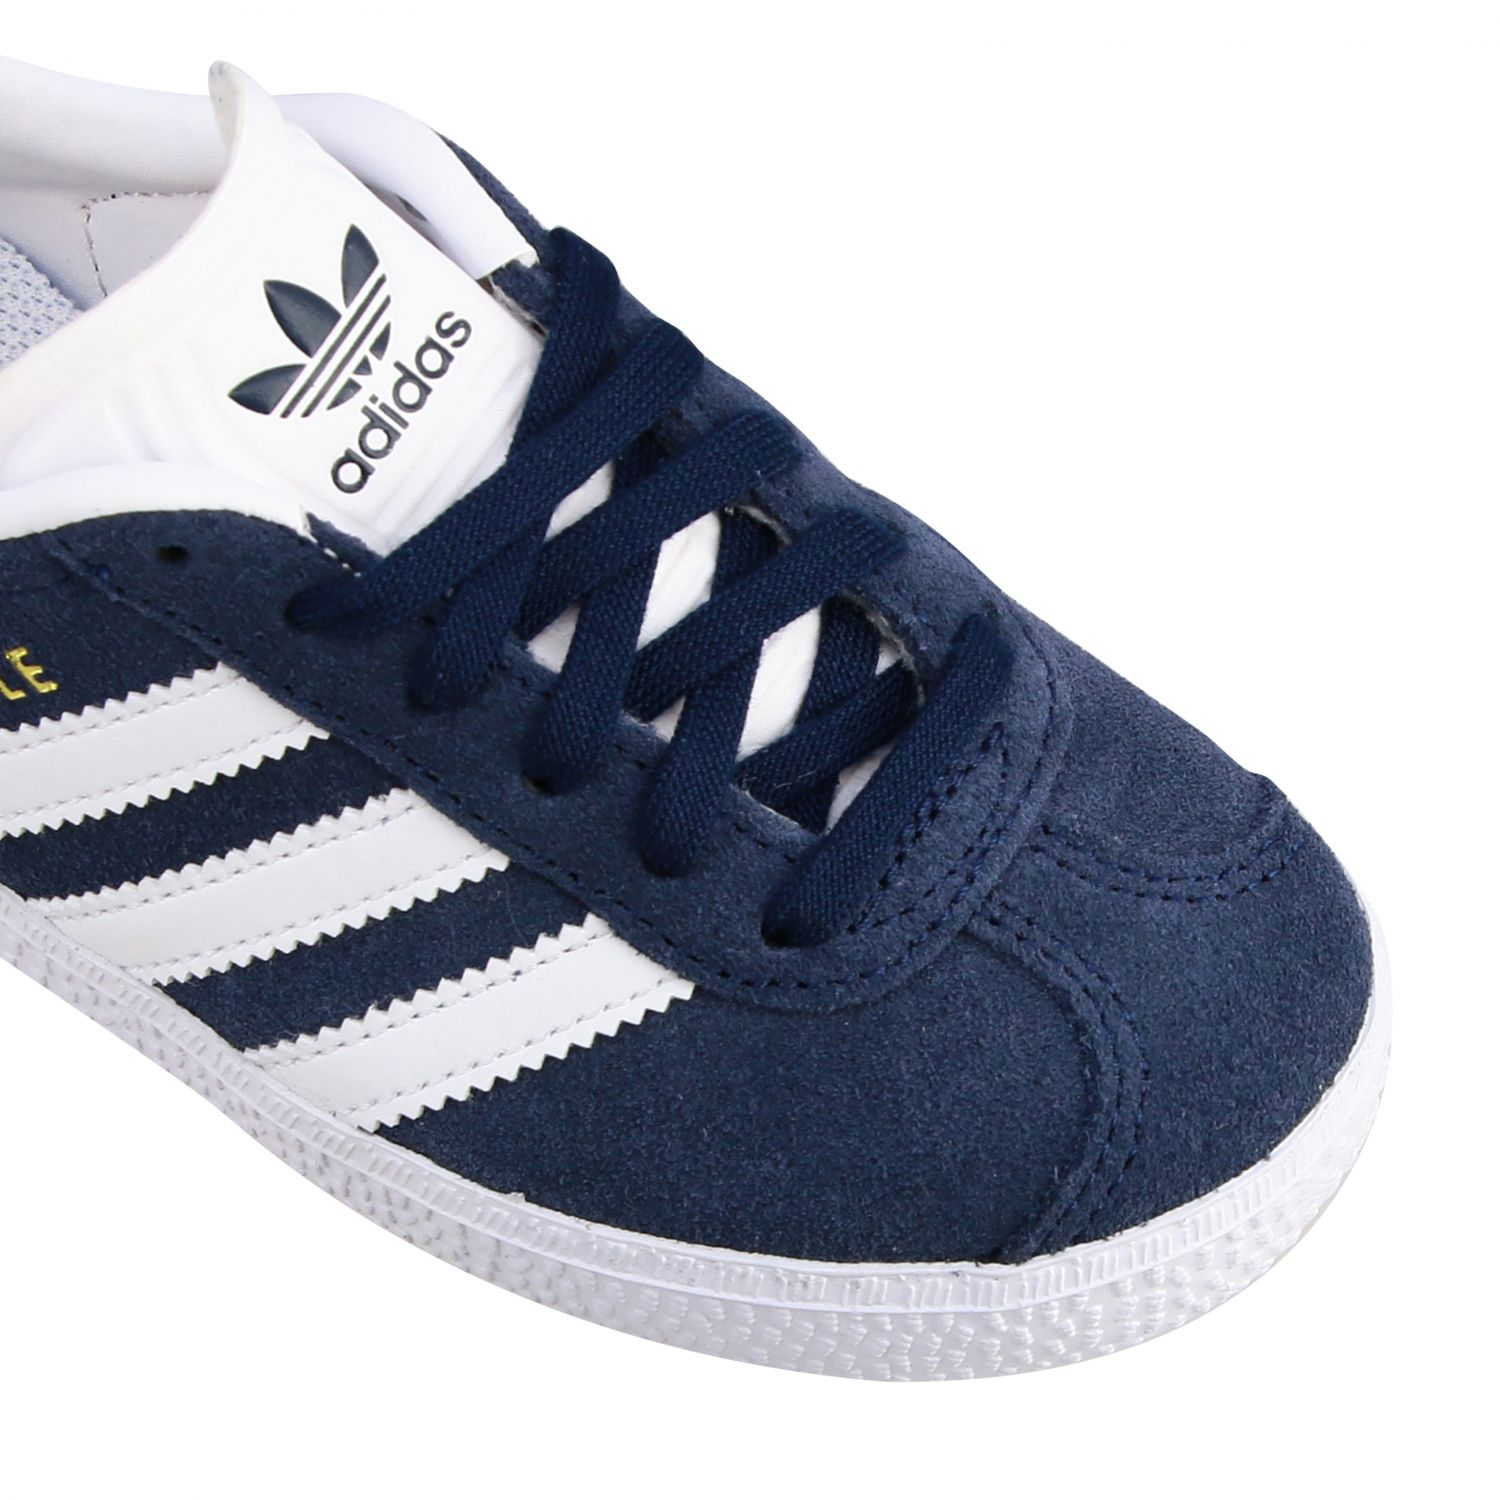 Shoes Adidas Originals: Gazelle C Adidas Originals sneakers in suede and leather blue 4